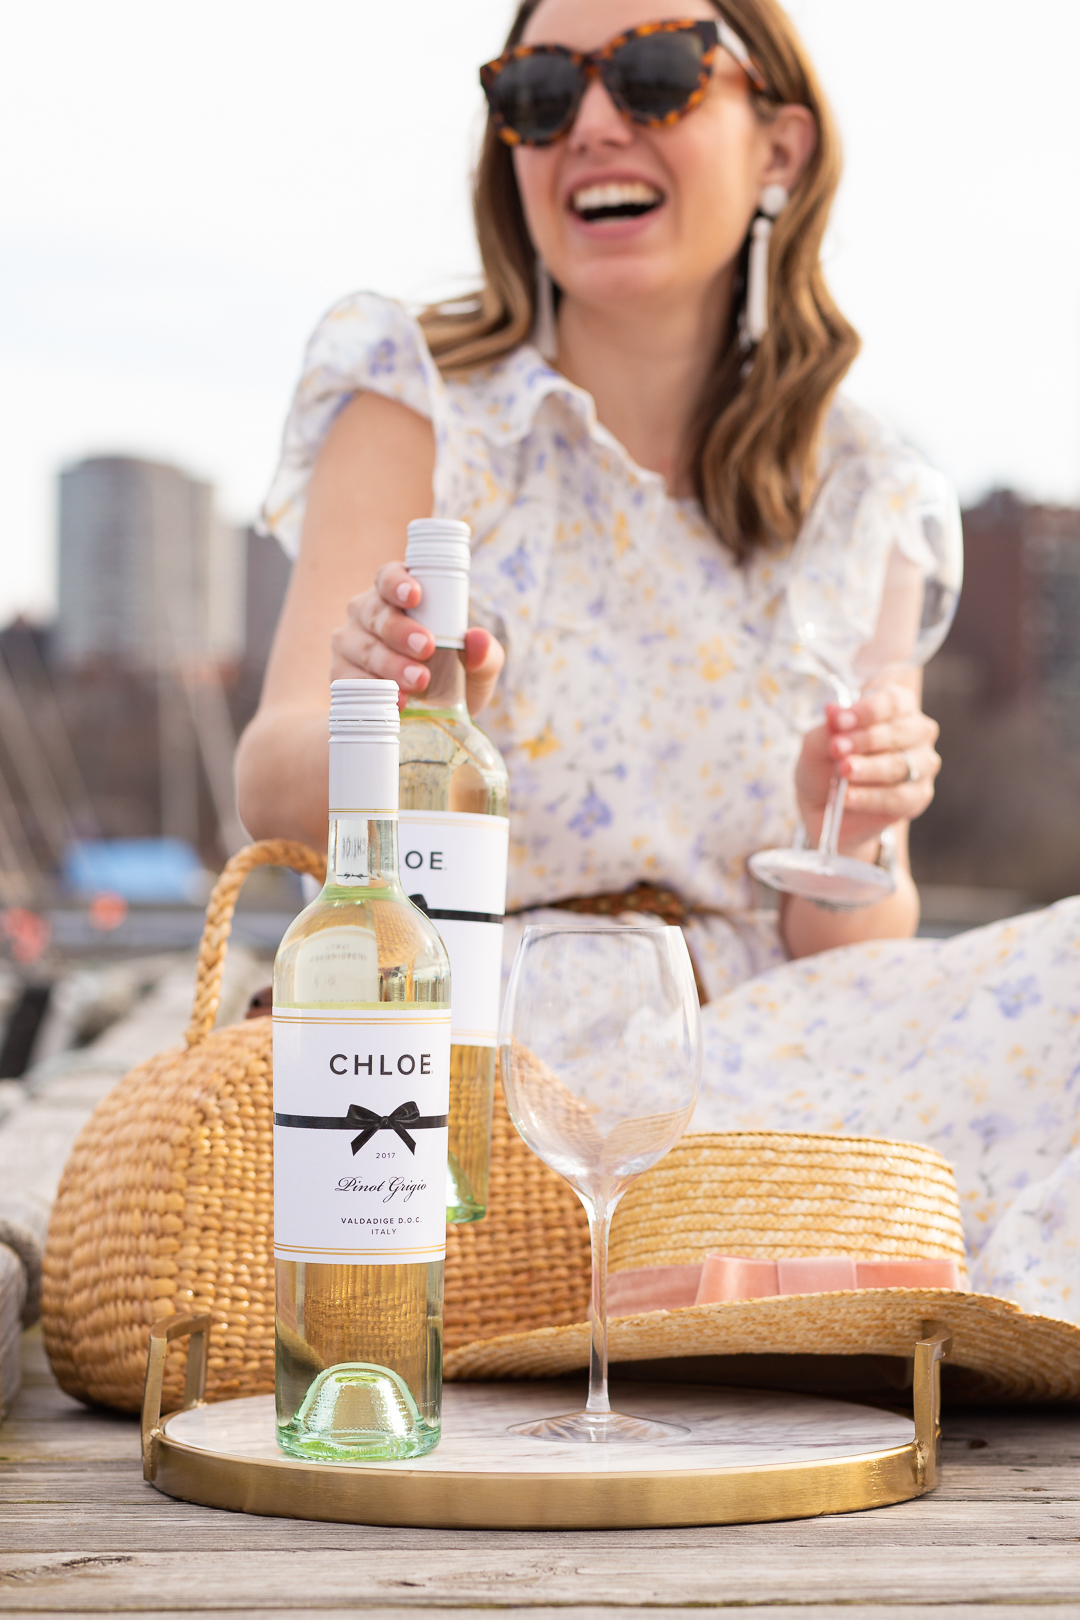 Celebrating great wine and female empowerment with Chloe Wine Collection